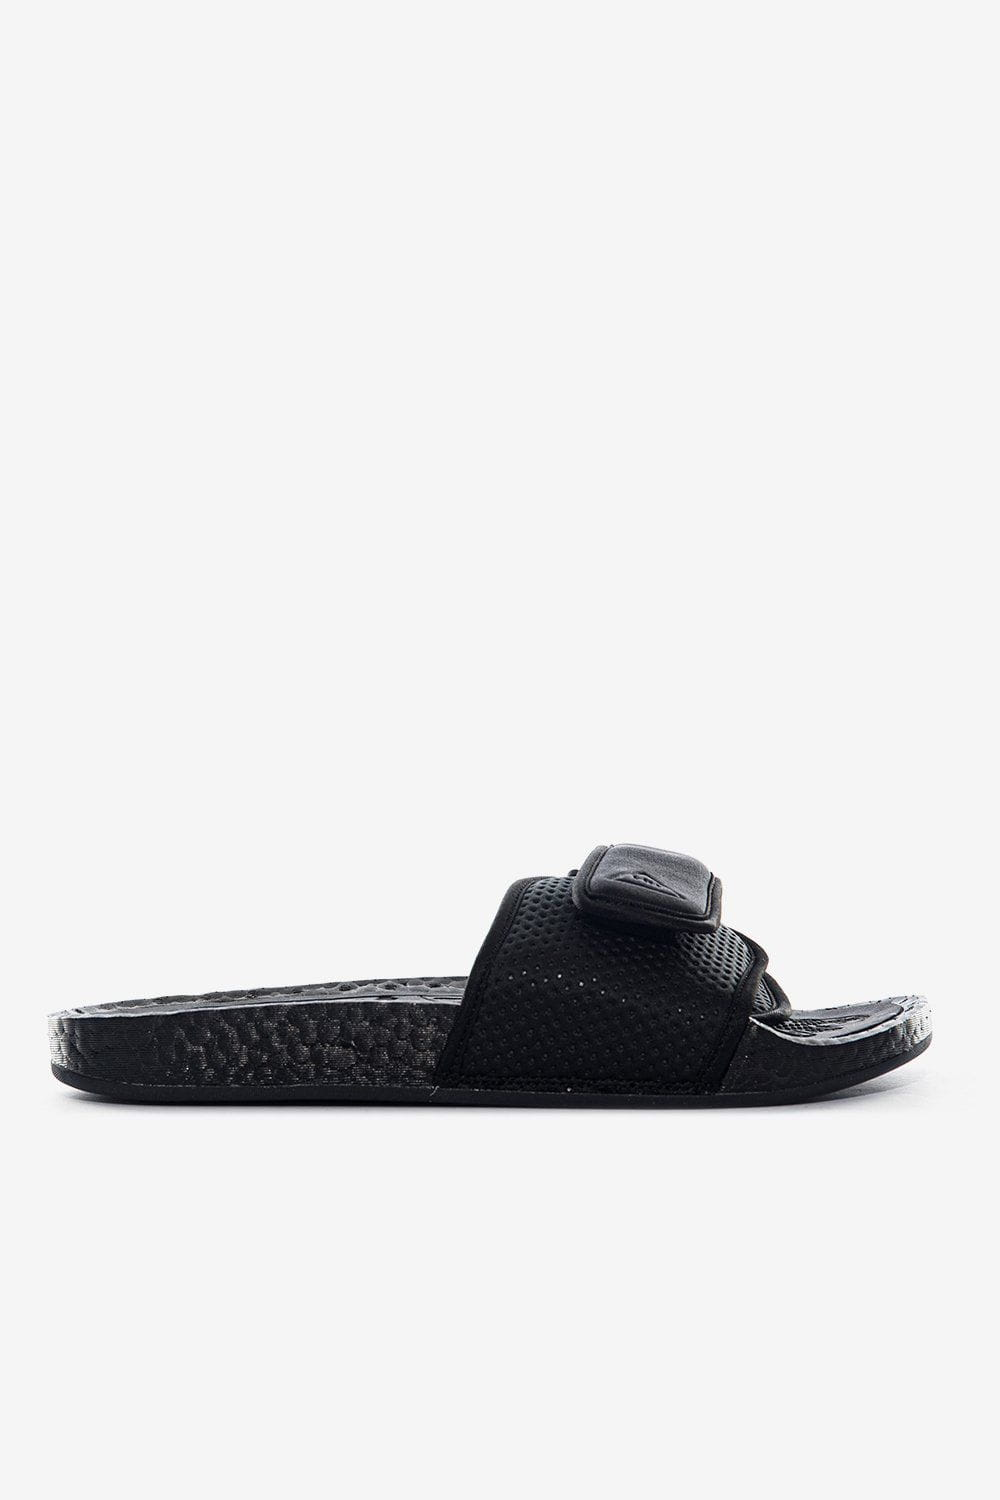 adidas Footwear adidas x Pharrell Williams Boost Slide